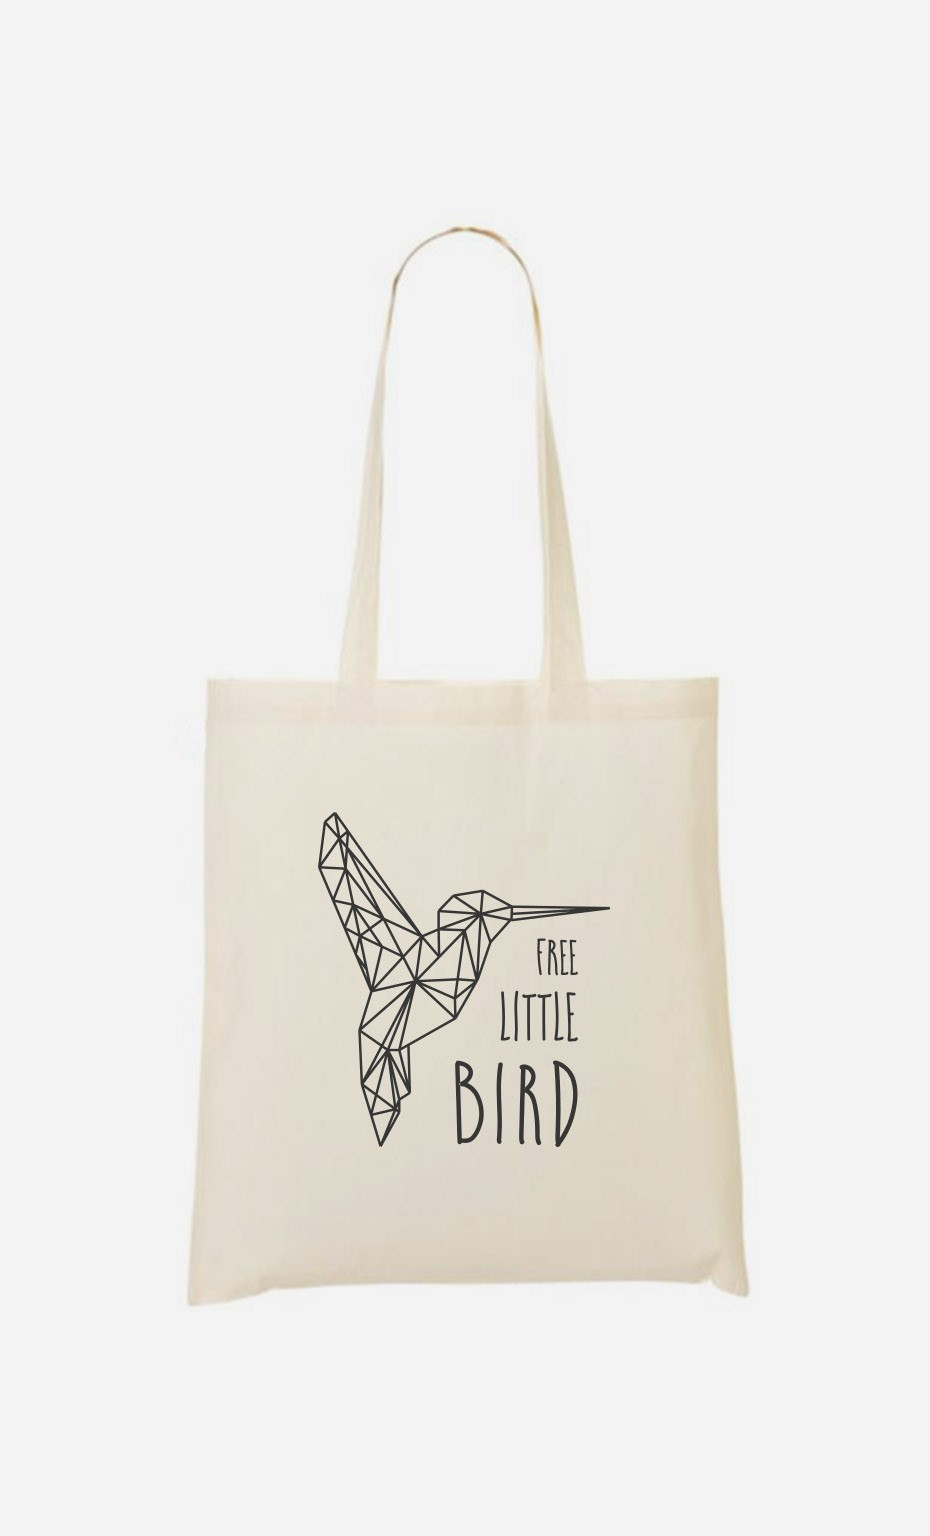 Tote Bag Free Little Bird